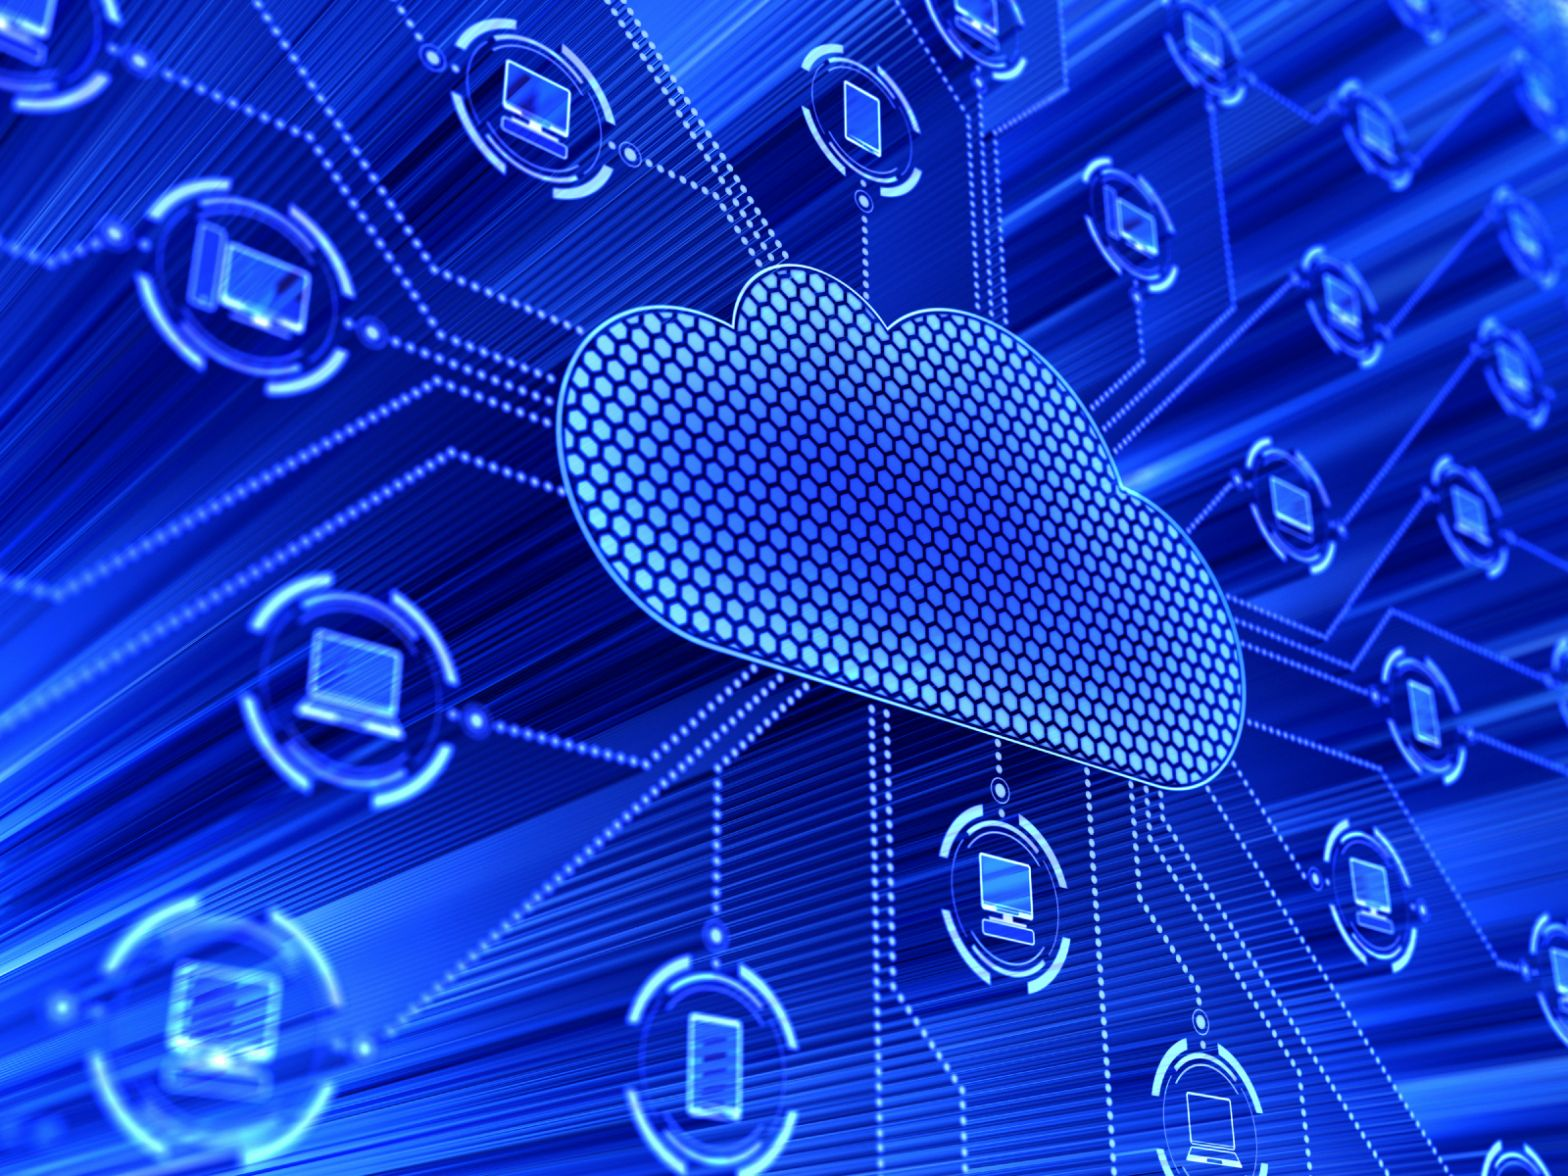 Cloud Computing Background for Download Cloud Puting Wallpaper Gallery